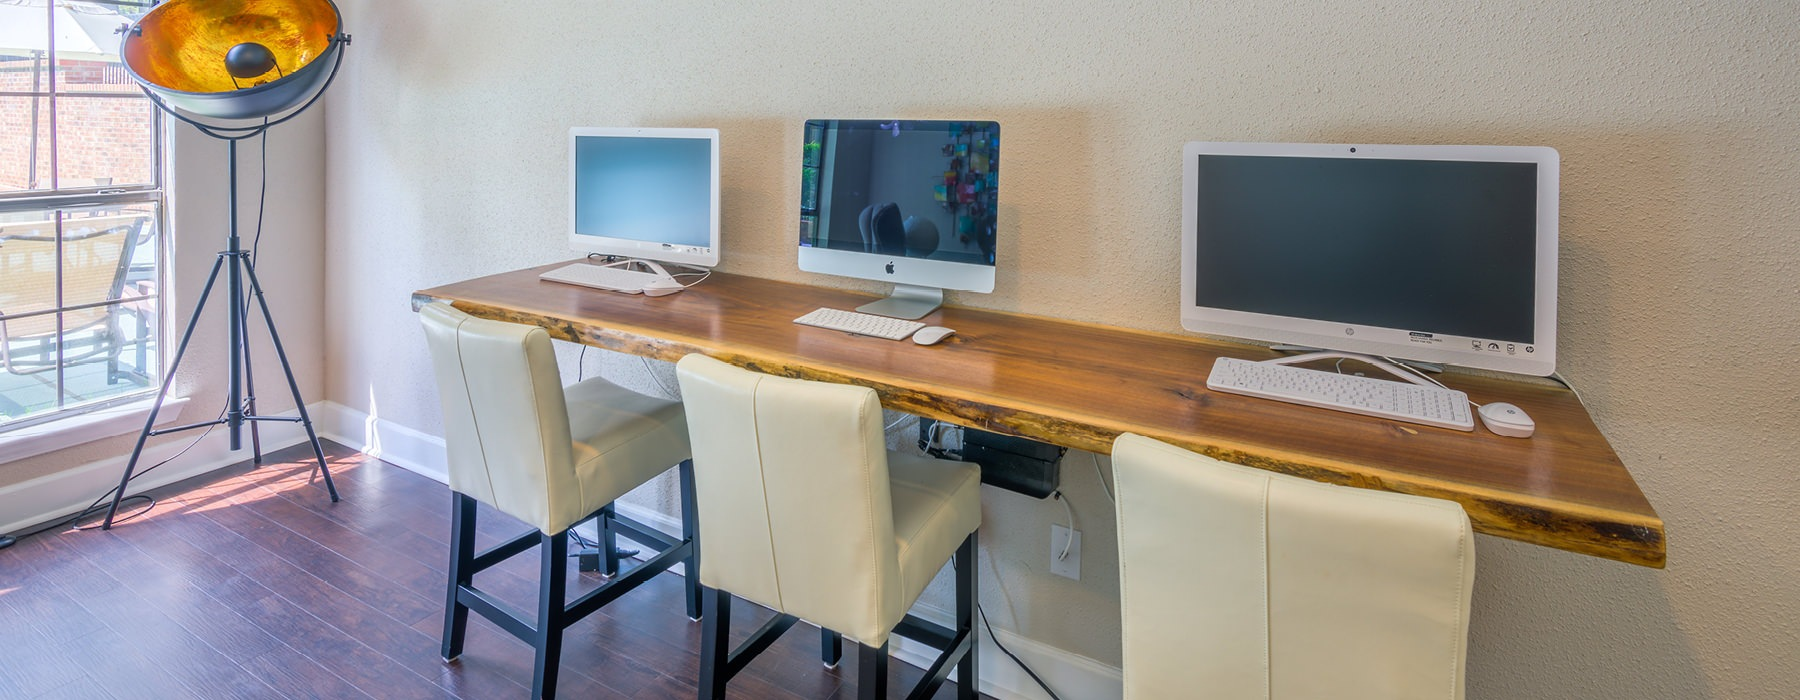 computer work stations against a wall in well lit room